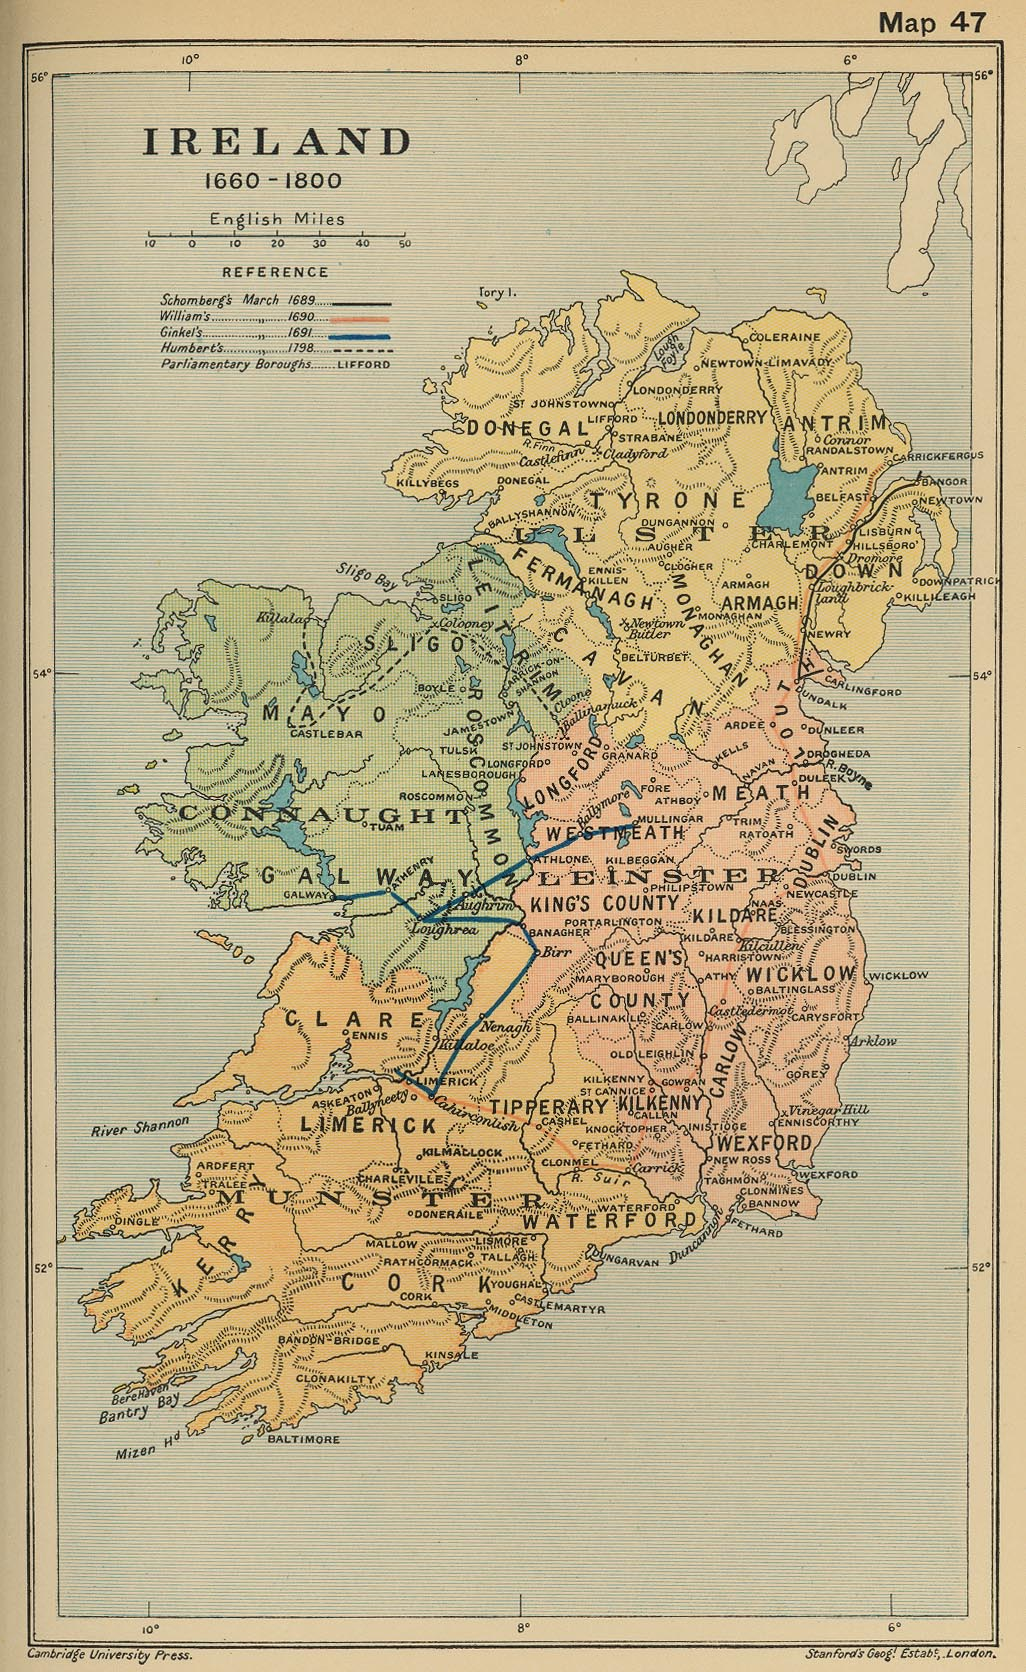 Map of Ireland 1660-1800